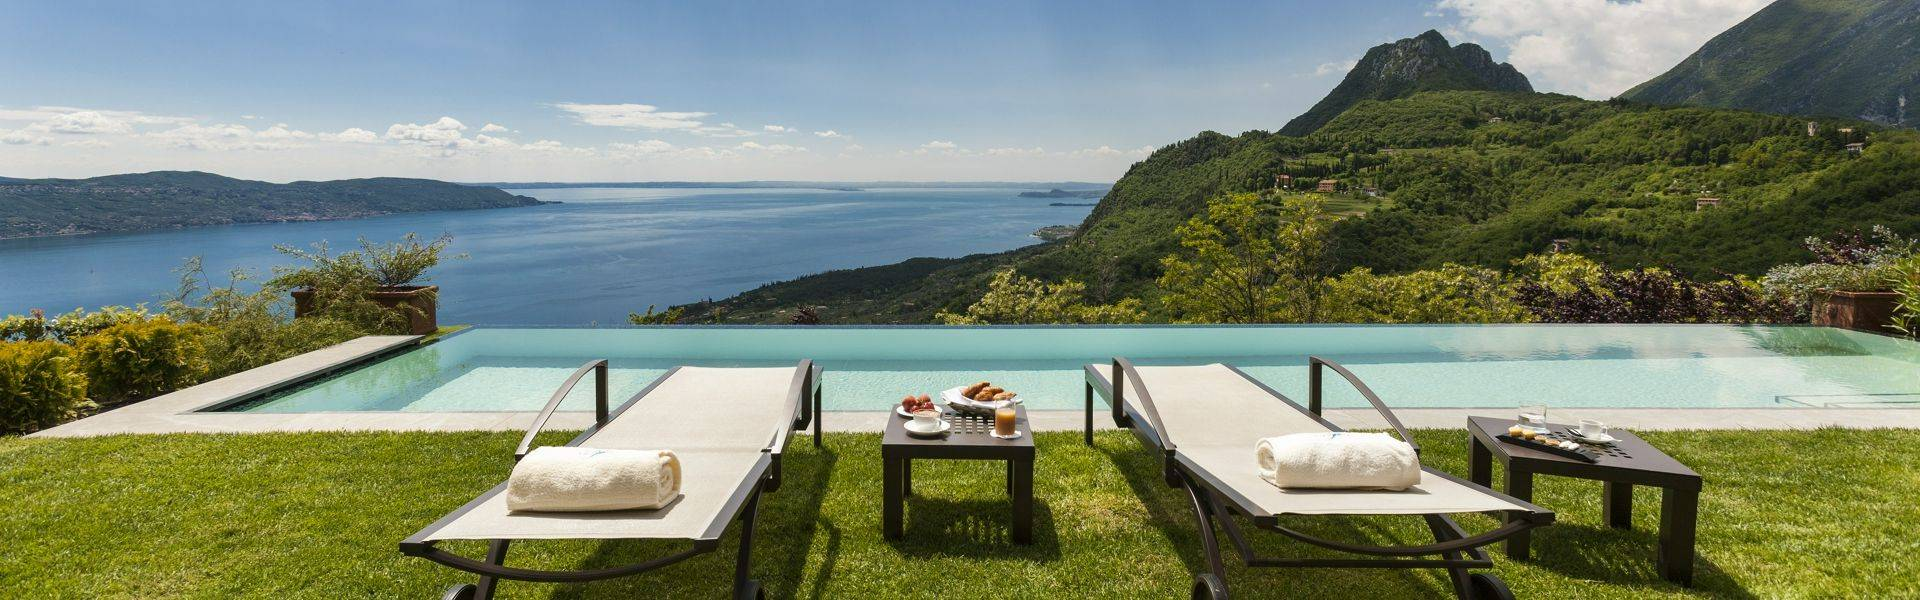 Italy; Lago di Garda; Lefay Resort and Spa; Via Feltrinelli 118; 25084 Gargnano. www.lefayresorts.com; Royal Spa Suite, priv…